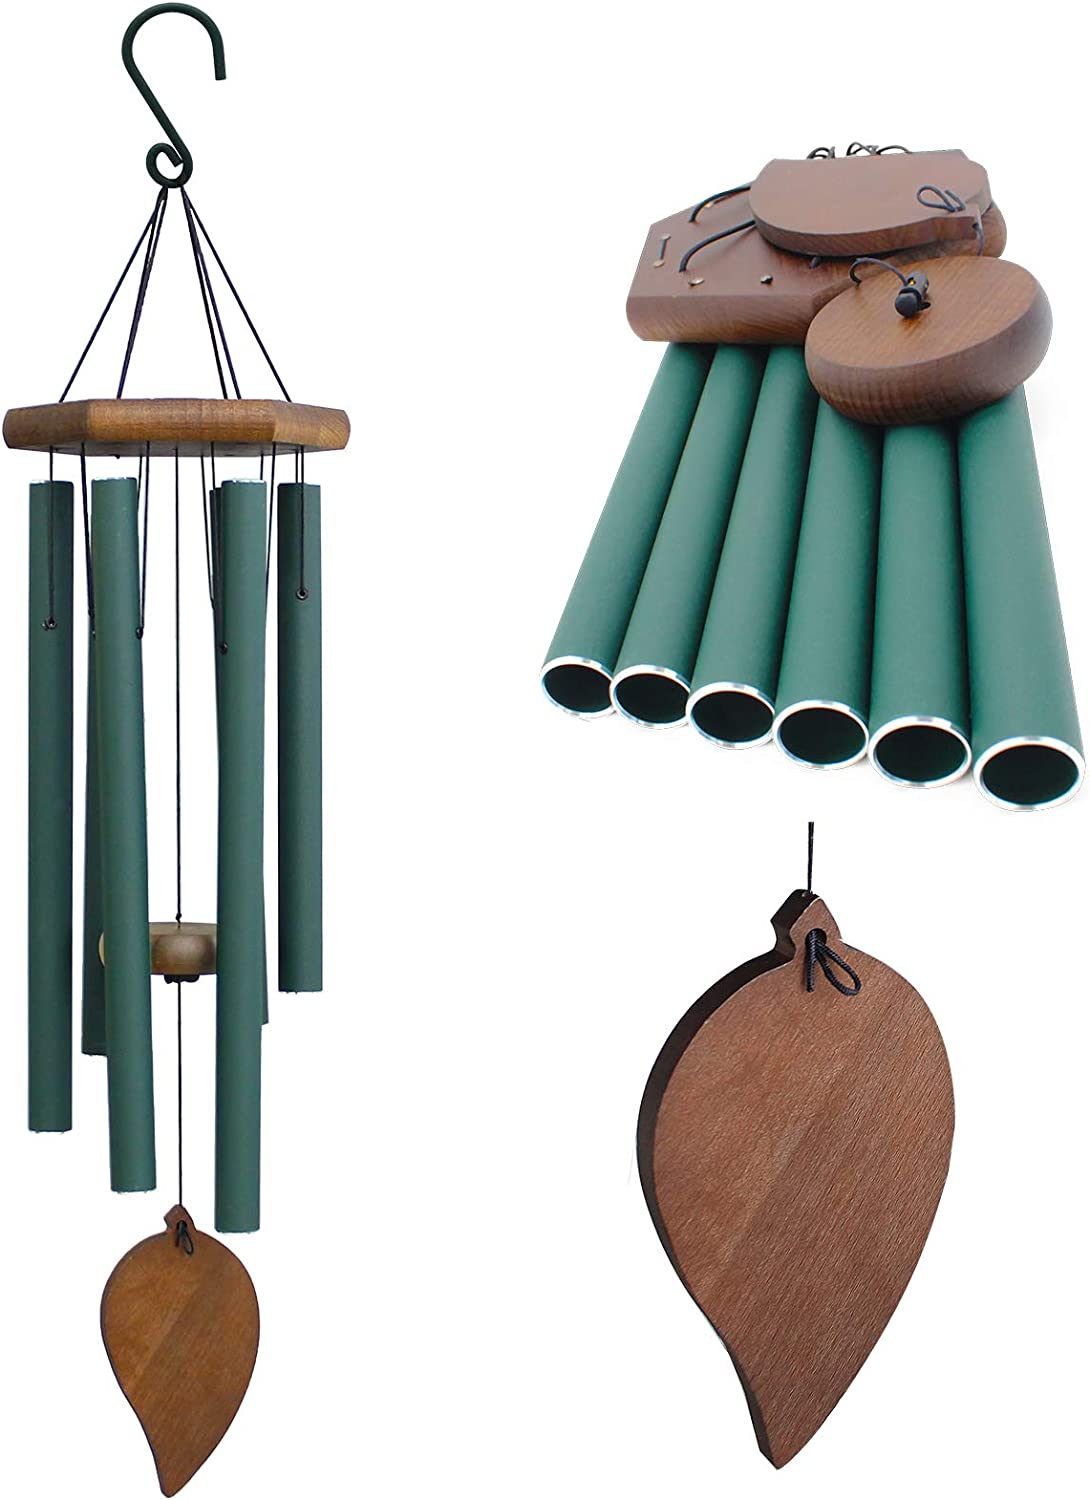 WEEBOPE Wind Chimes for Outdoors Deep San Francisco Mall f Windchime Tone 30 - Weekly update Inch